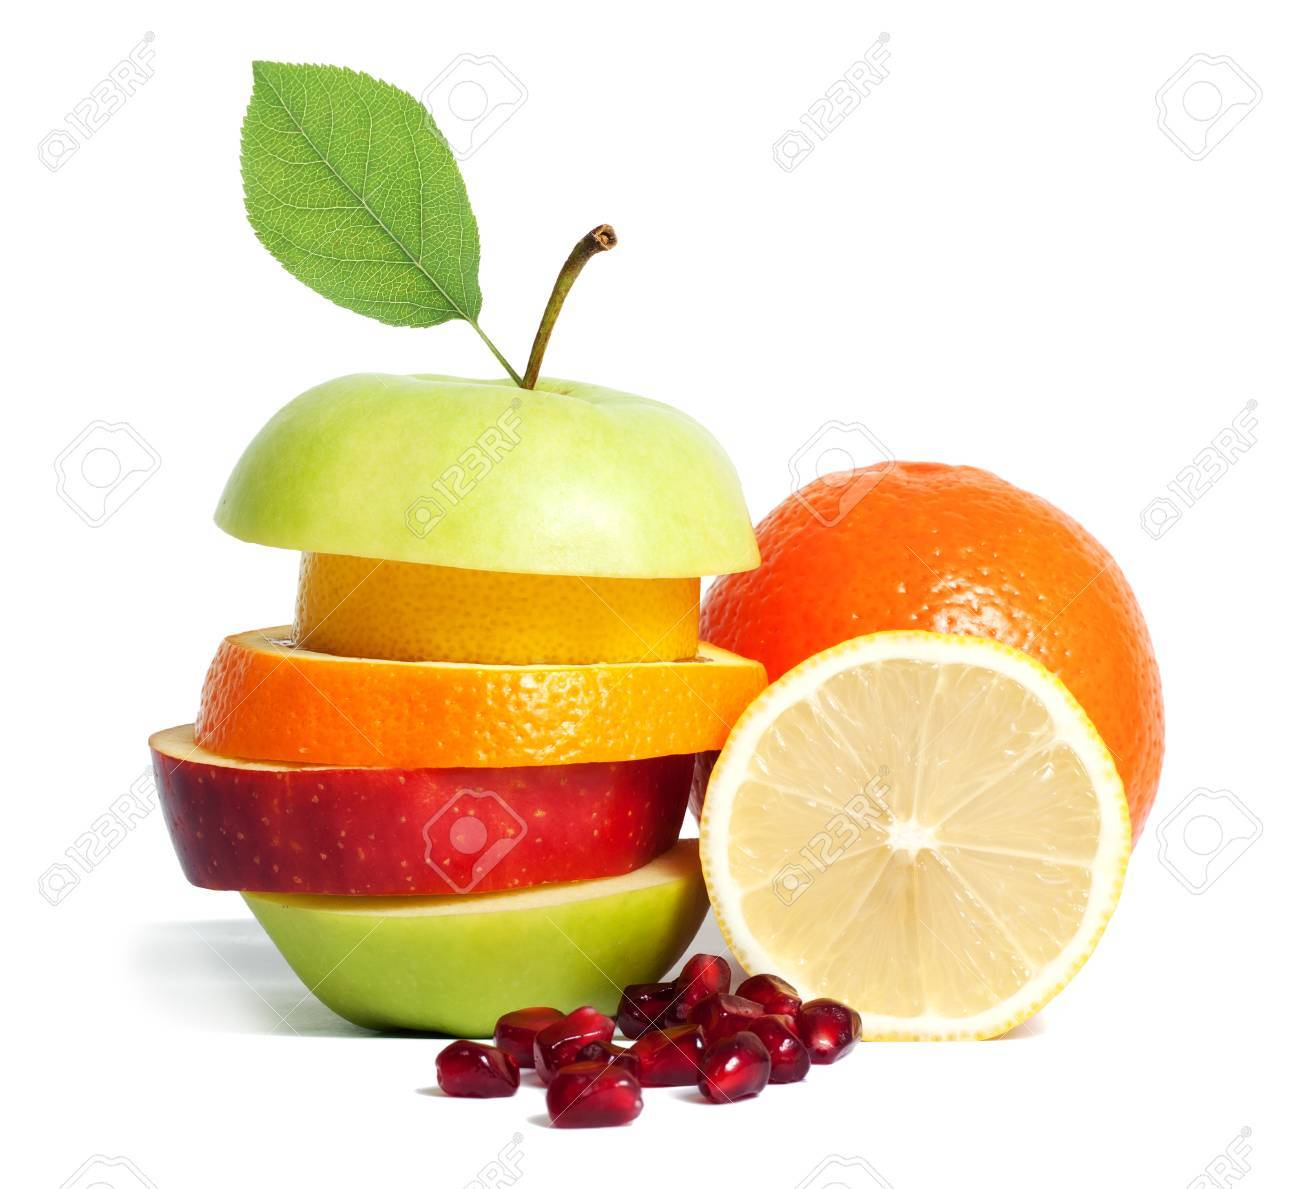 Fresh mixed fruit diet isolated - 41664437